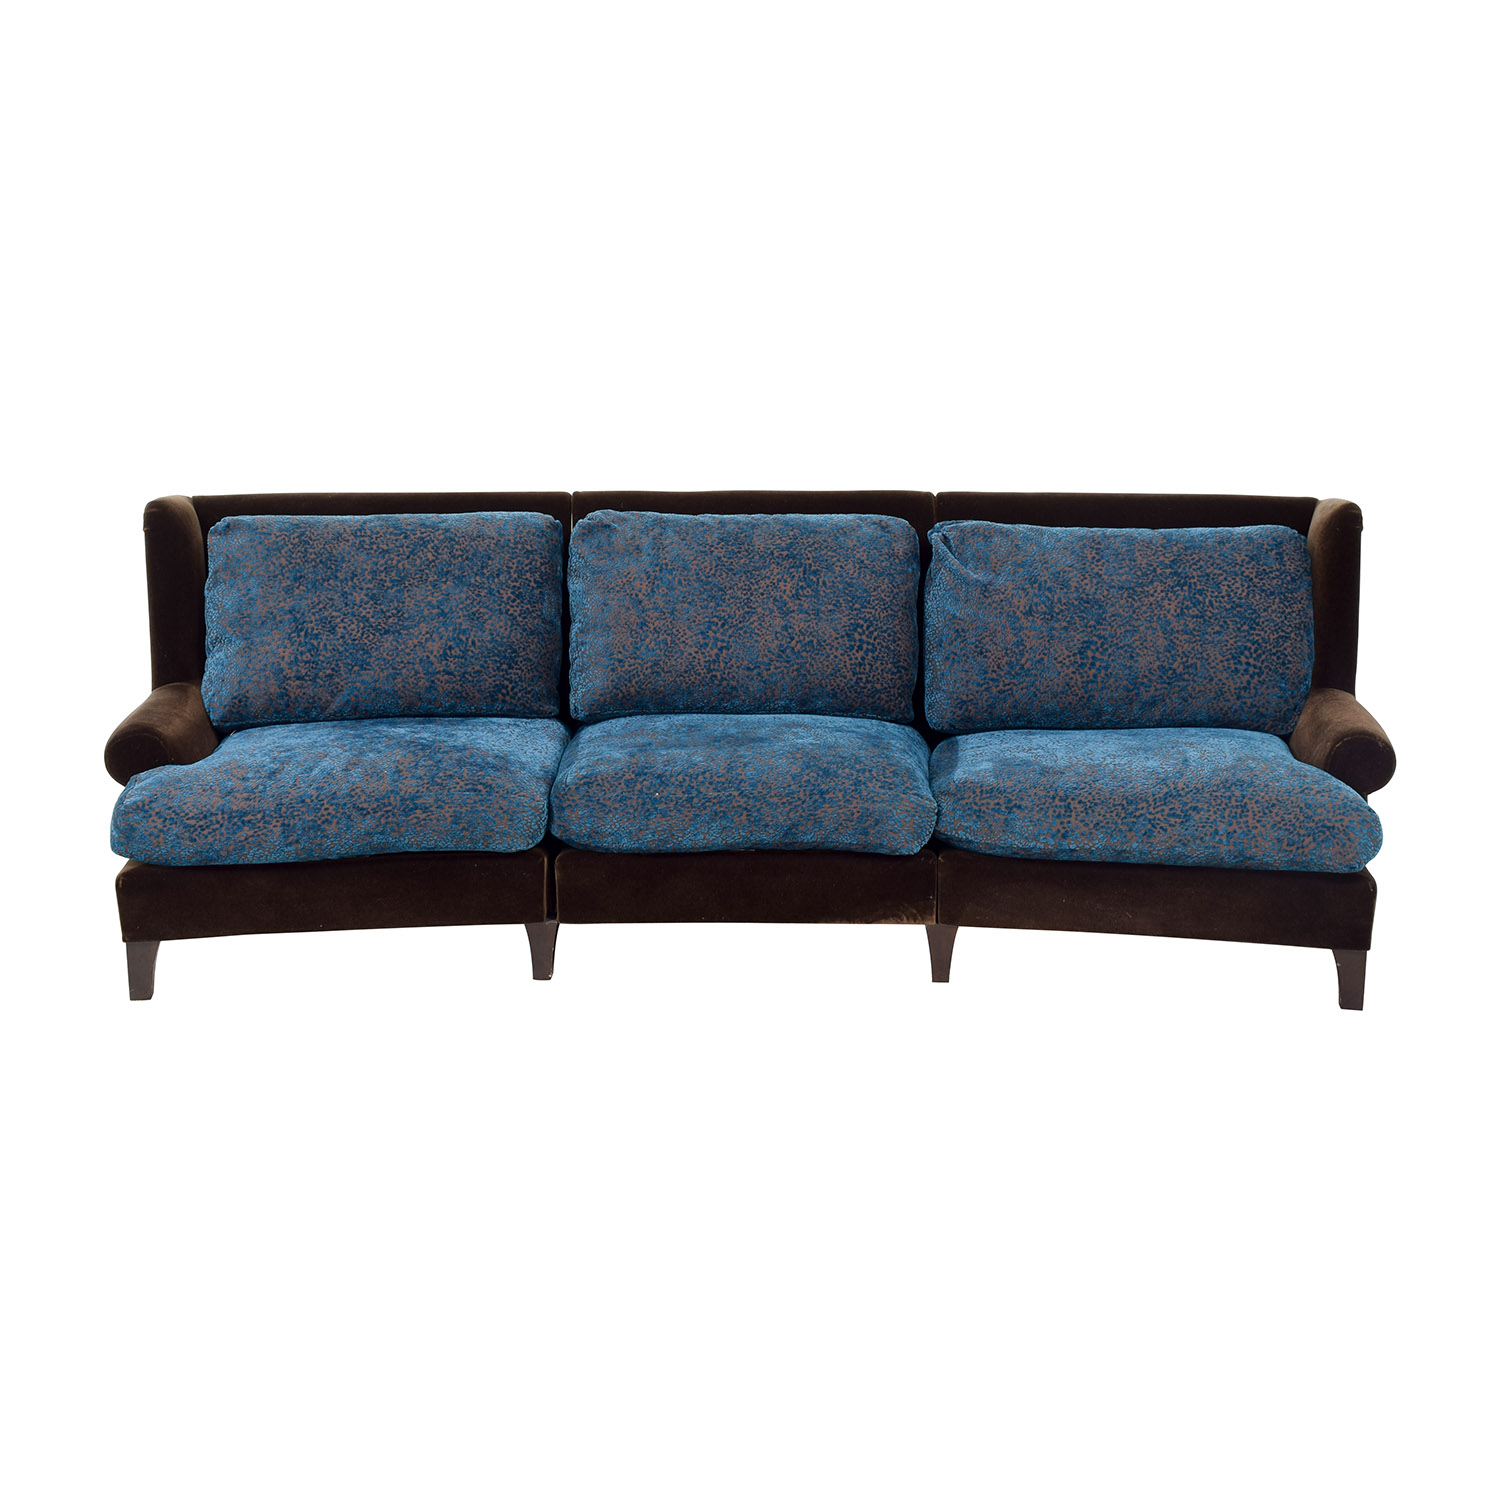 Doreen Interiors Doreen Interiors Curved Sofa price